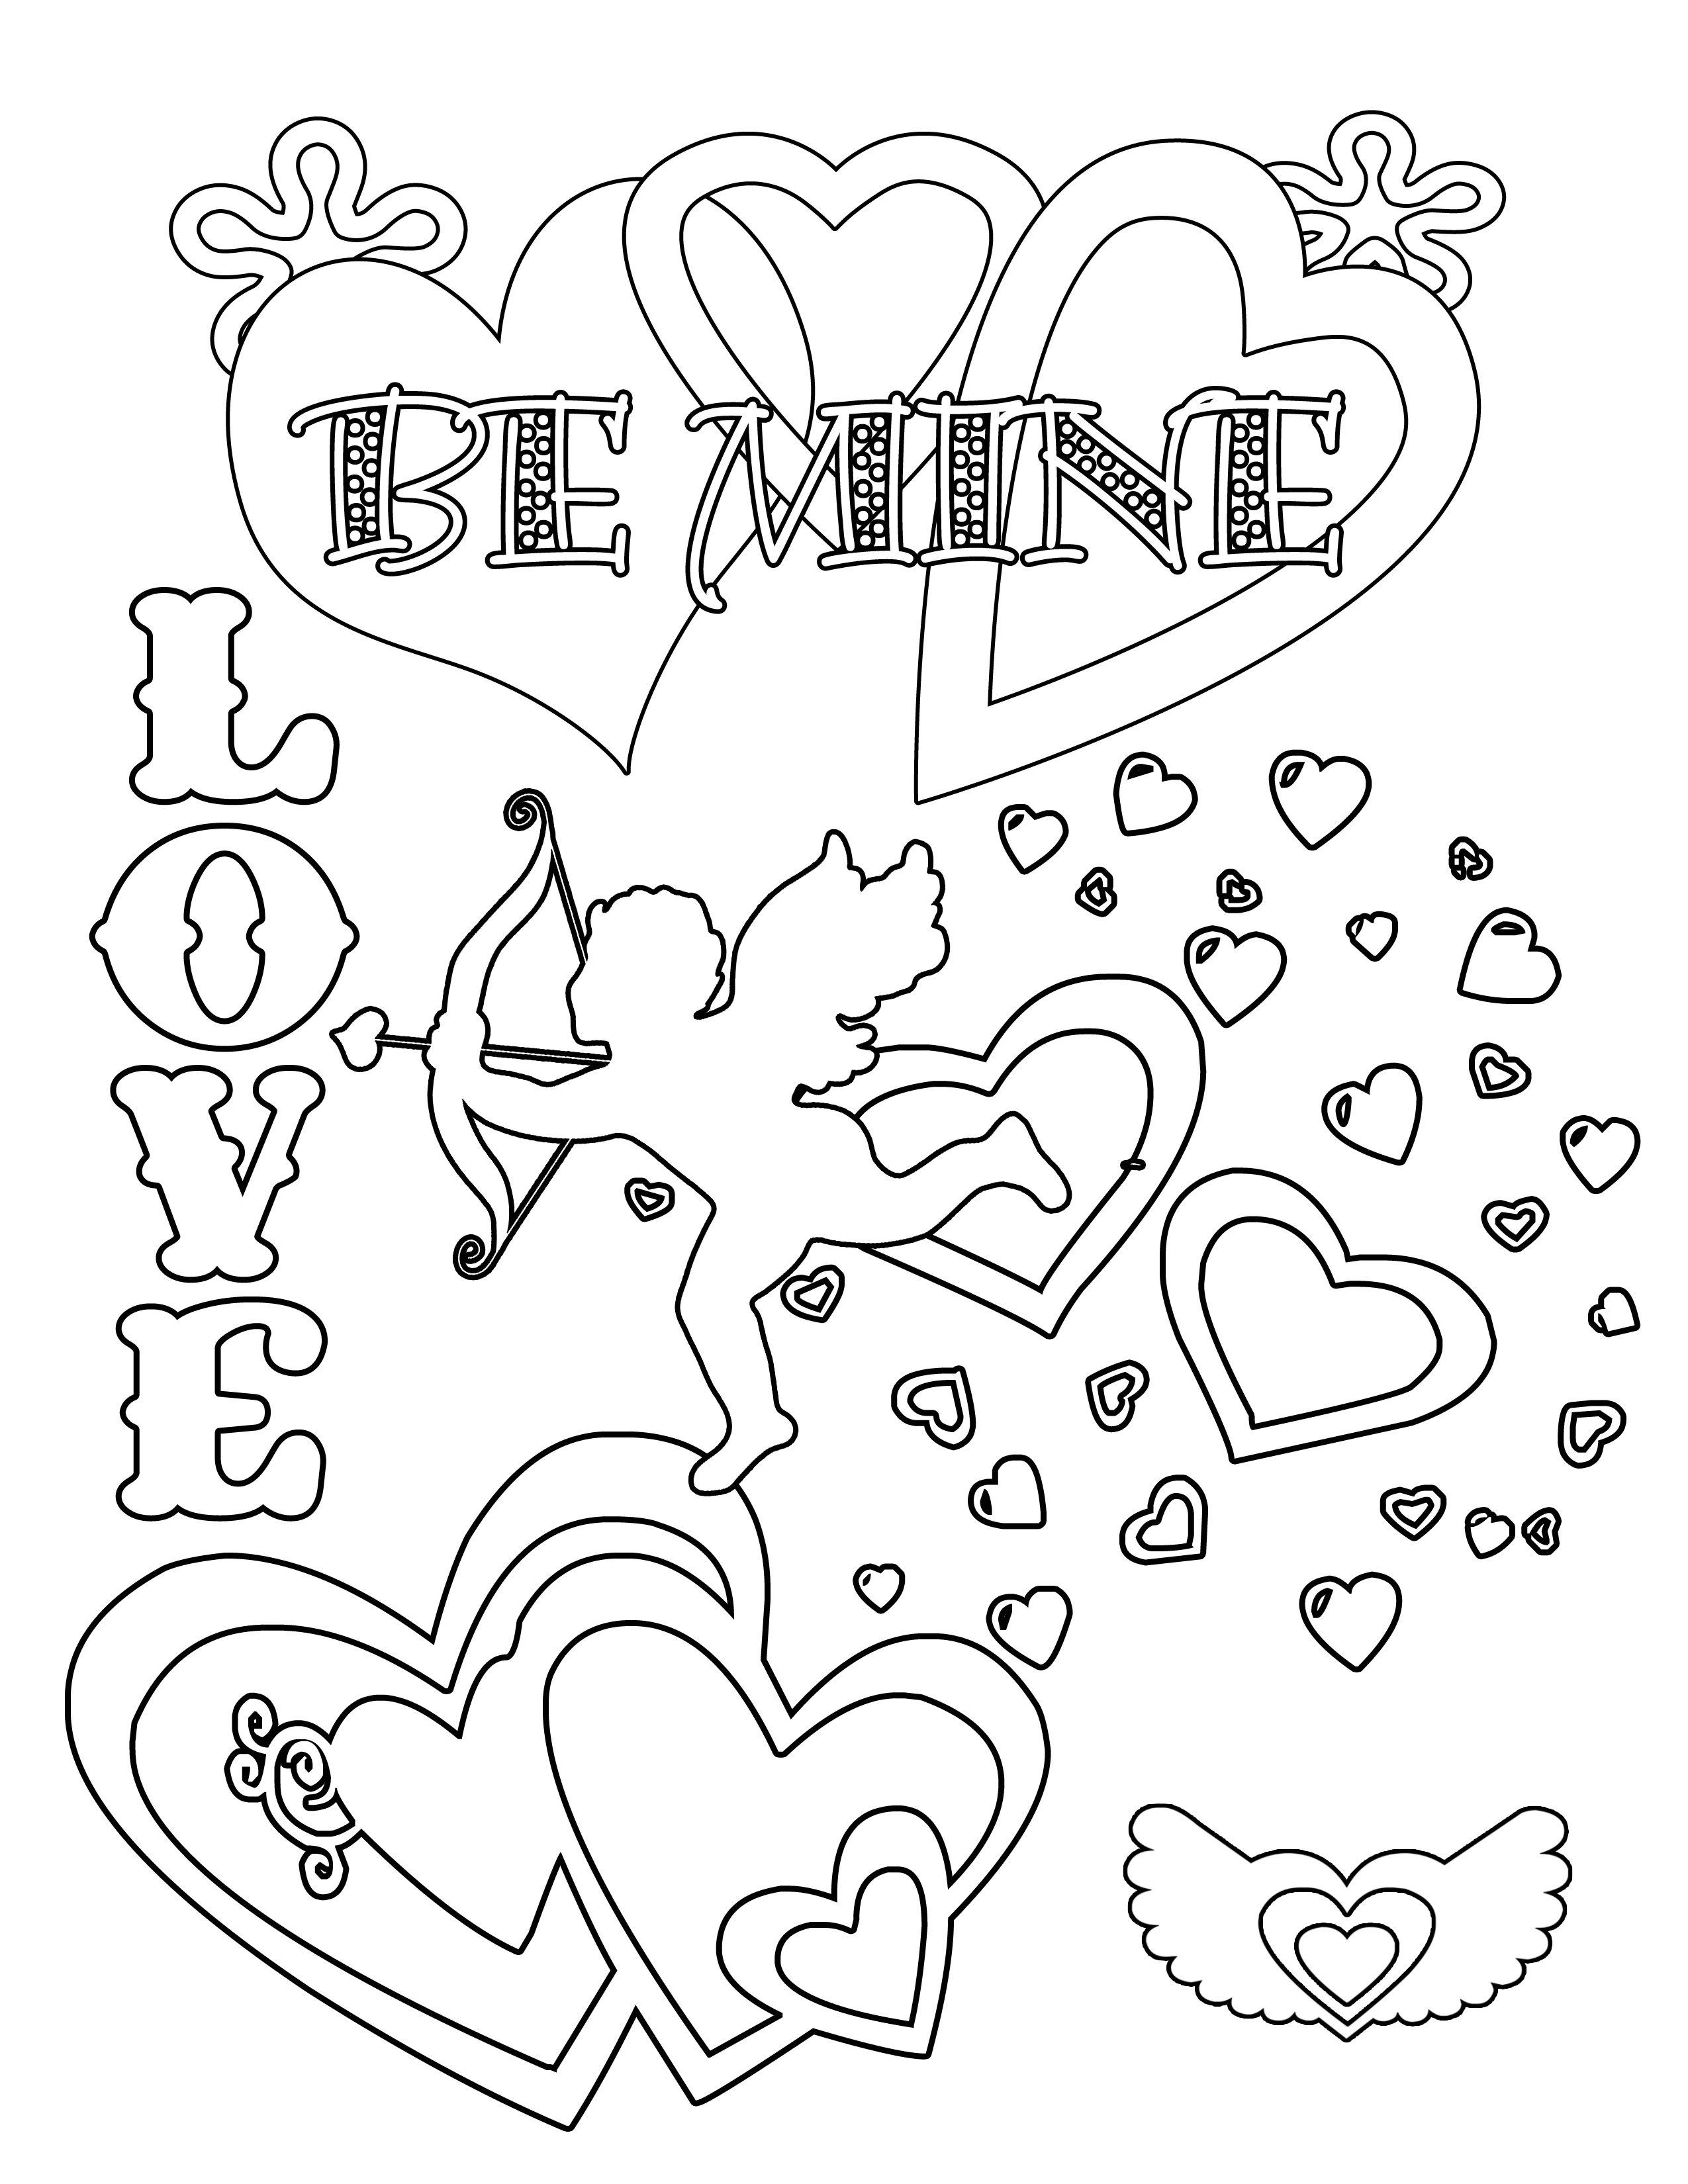 valentines coloring pages printable party simplicity free valentines day coloring pages and valentines coloring pages printable